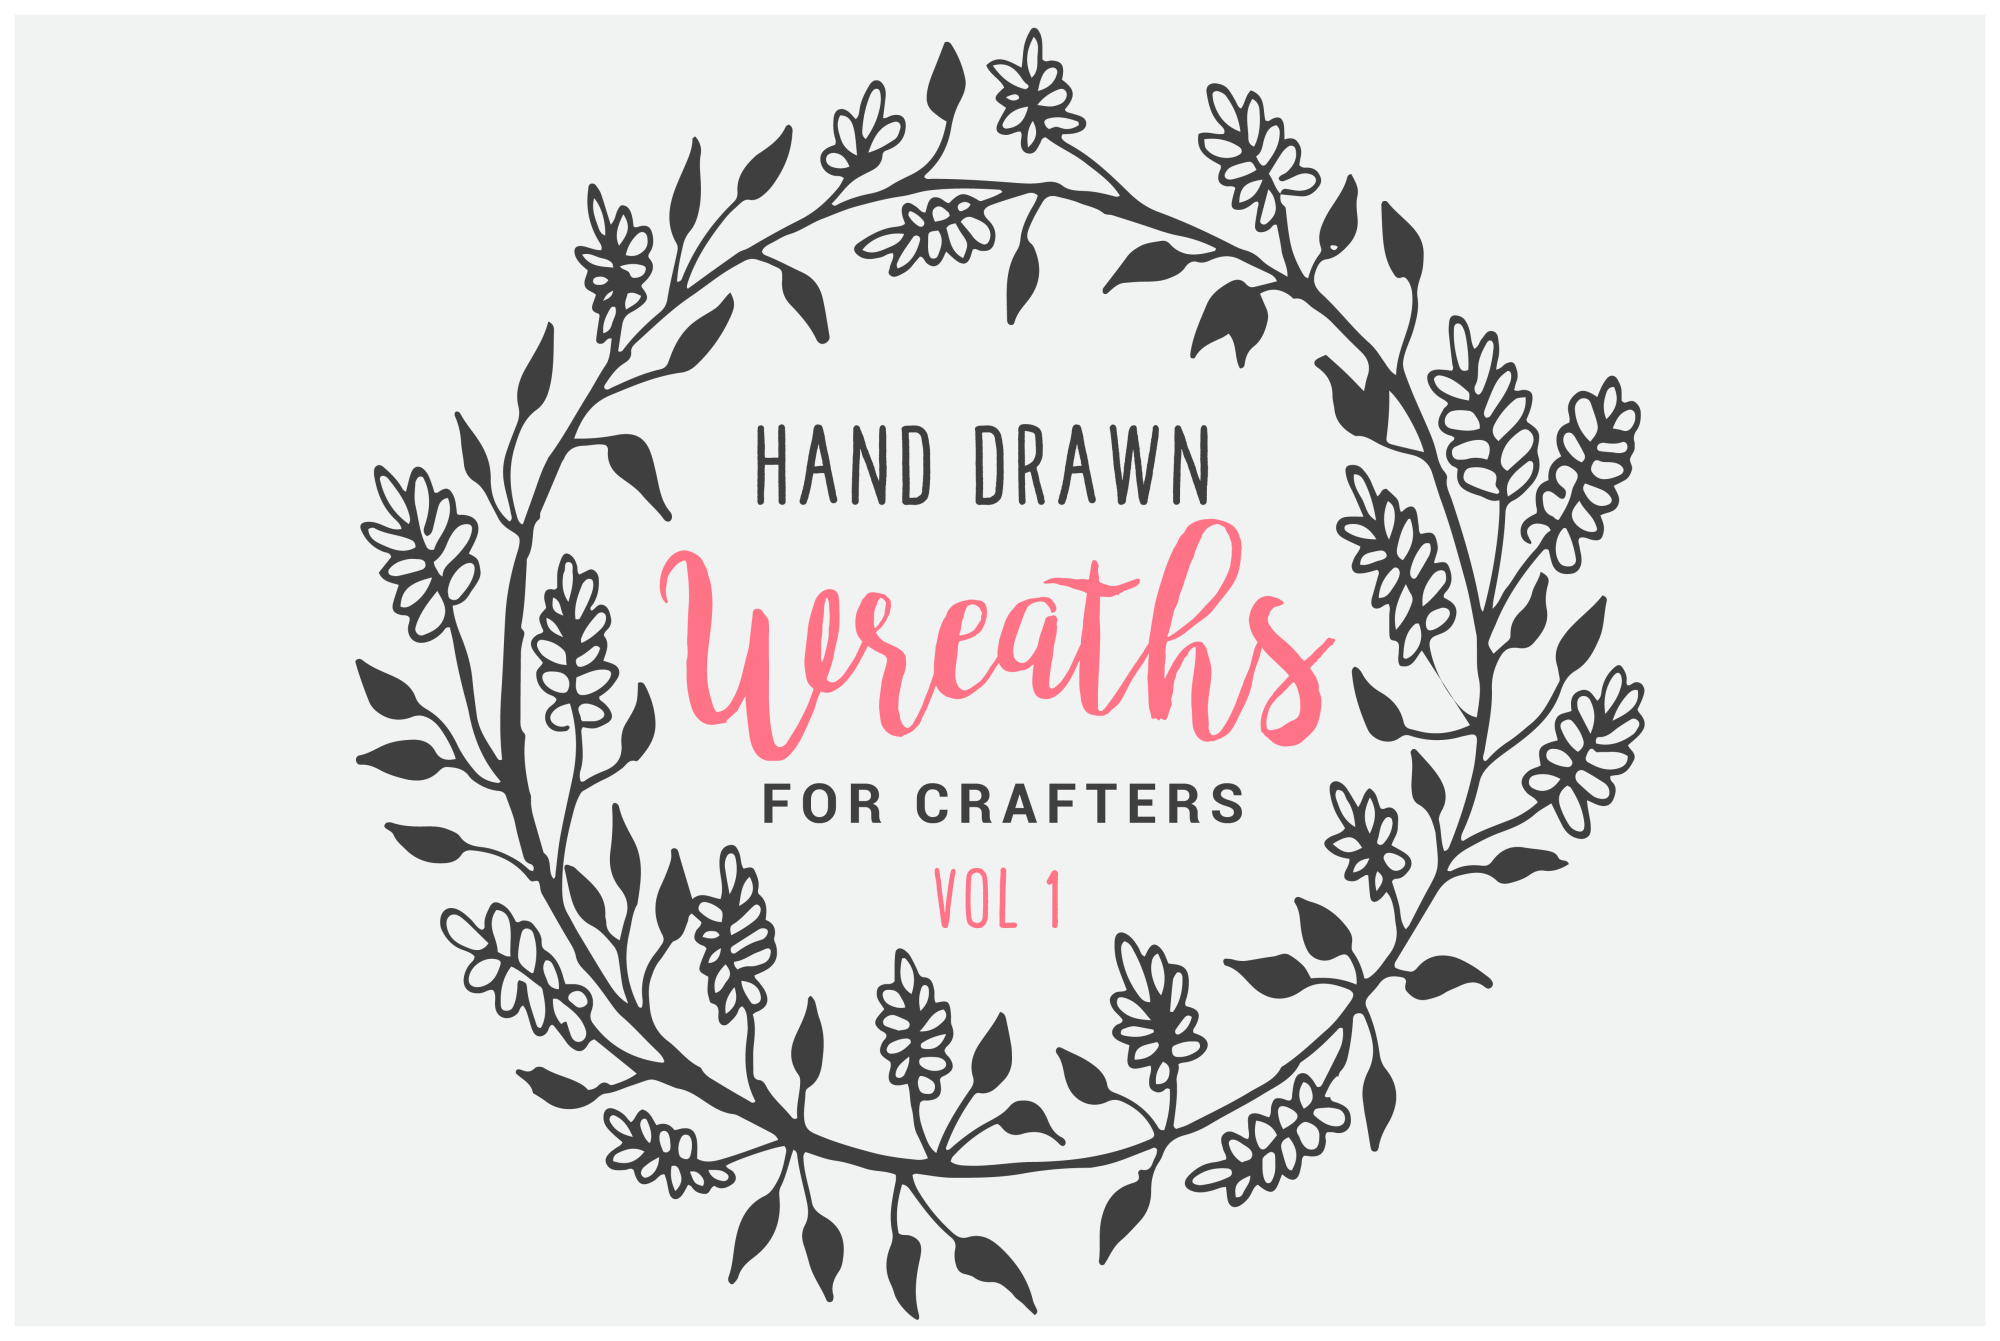 Hand Drawn Wreaths for Crafters Vol 1 example image 1